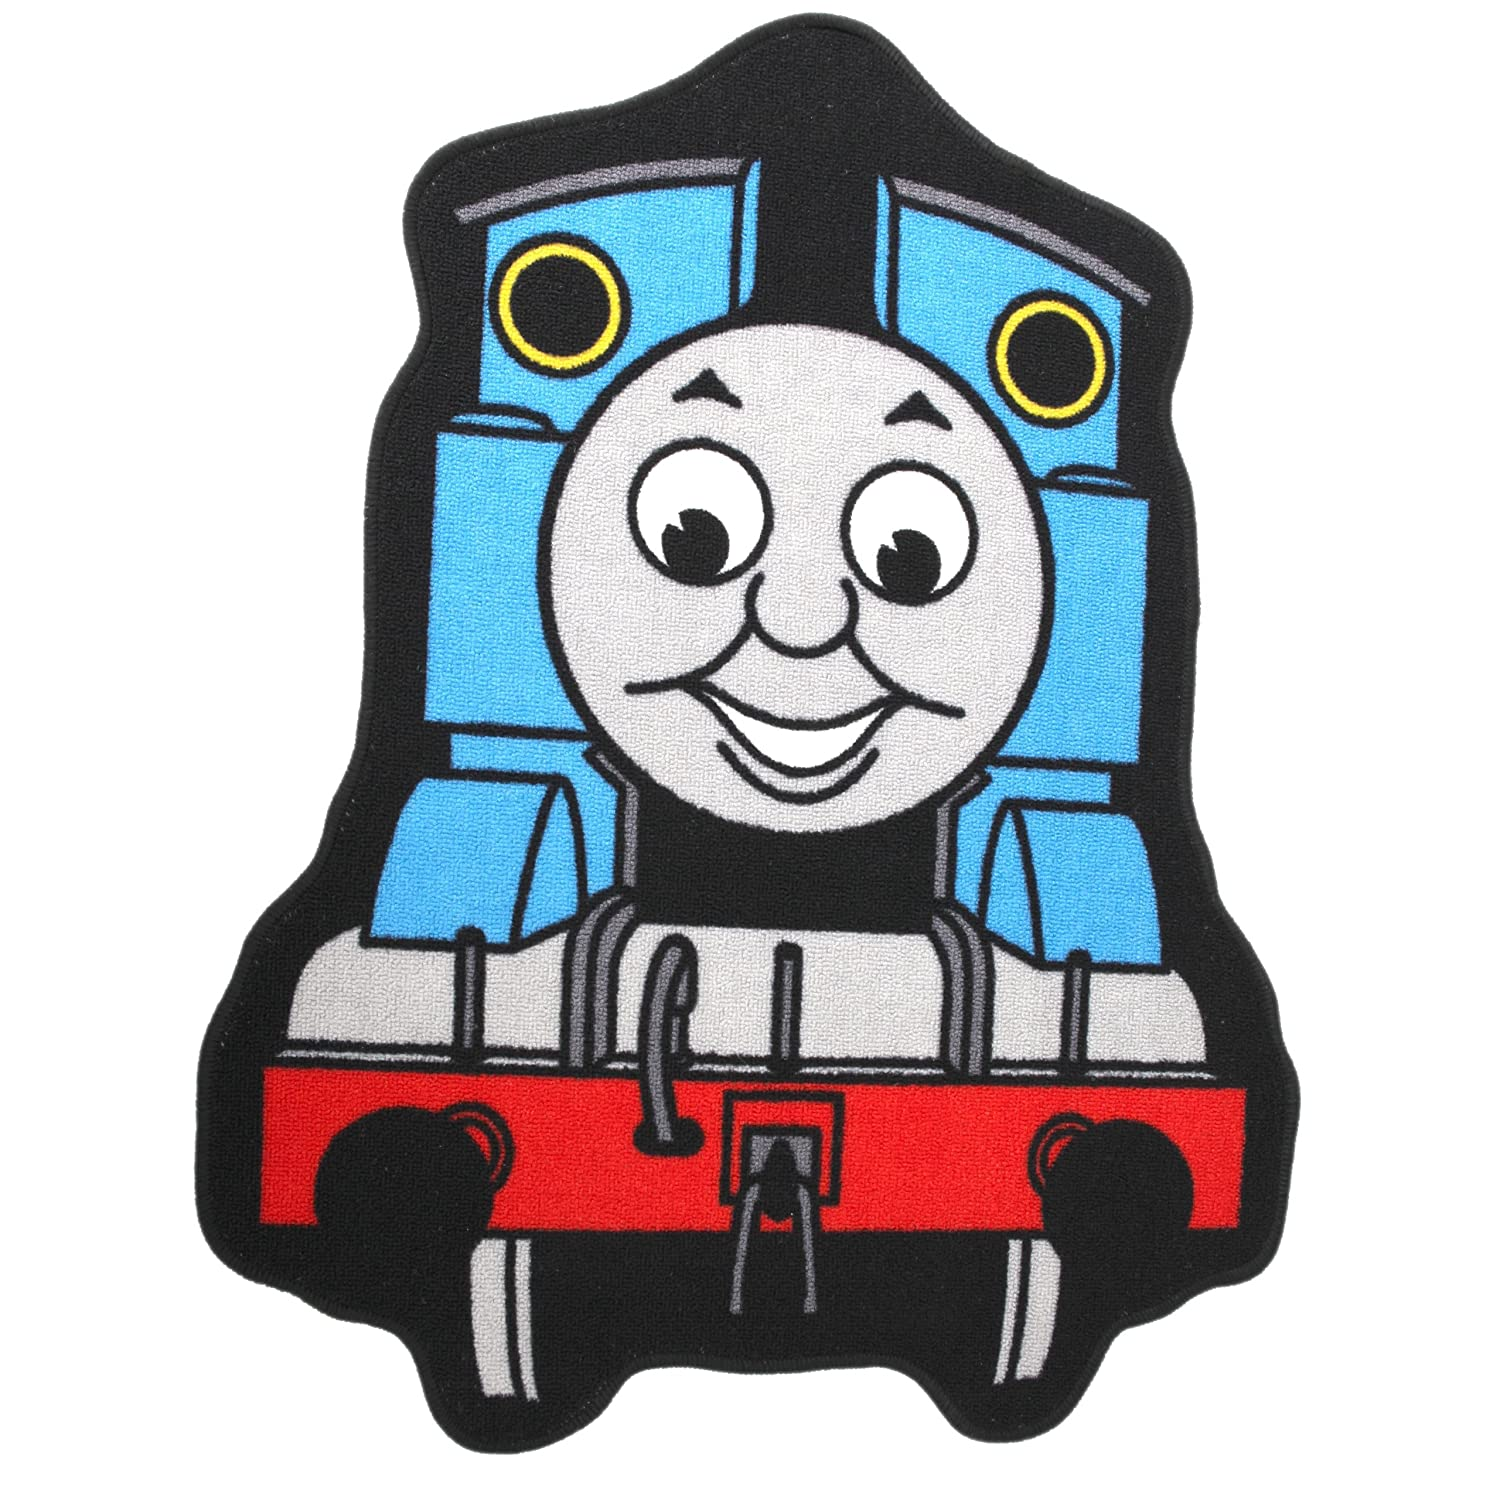 Childrens/Kids Boys Thomas The Tank Engine Bedroom Floor Rug/Mat (84cm x 67cm) (Blue/Red) Universal Textiles